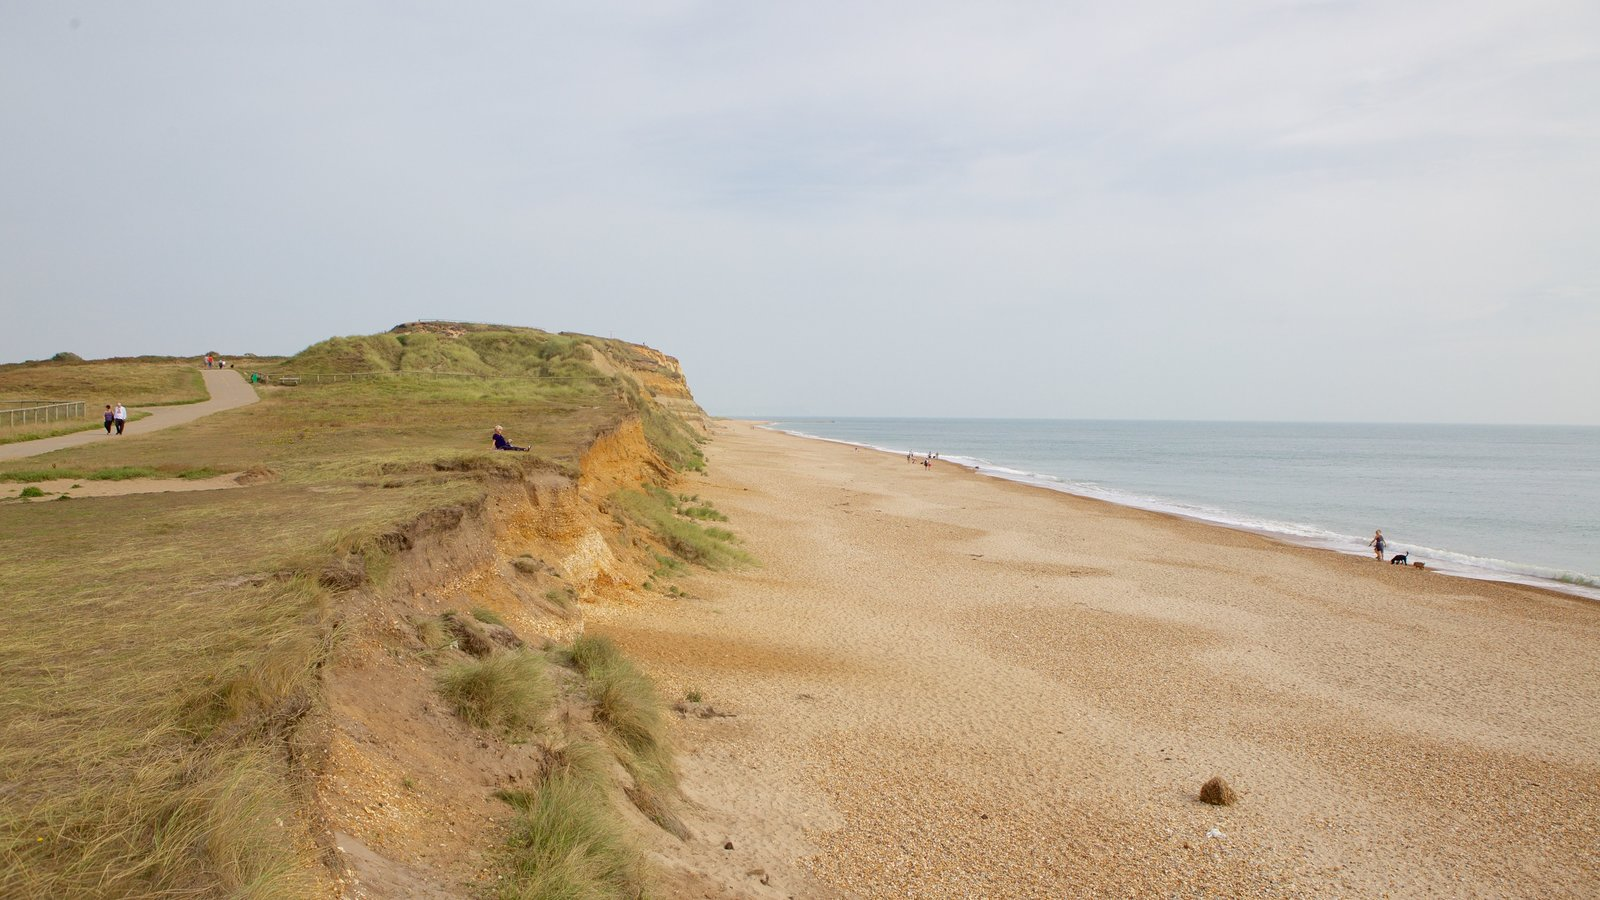 Hengistbury Head featuring a pebble beach and tranquil scenes